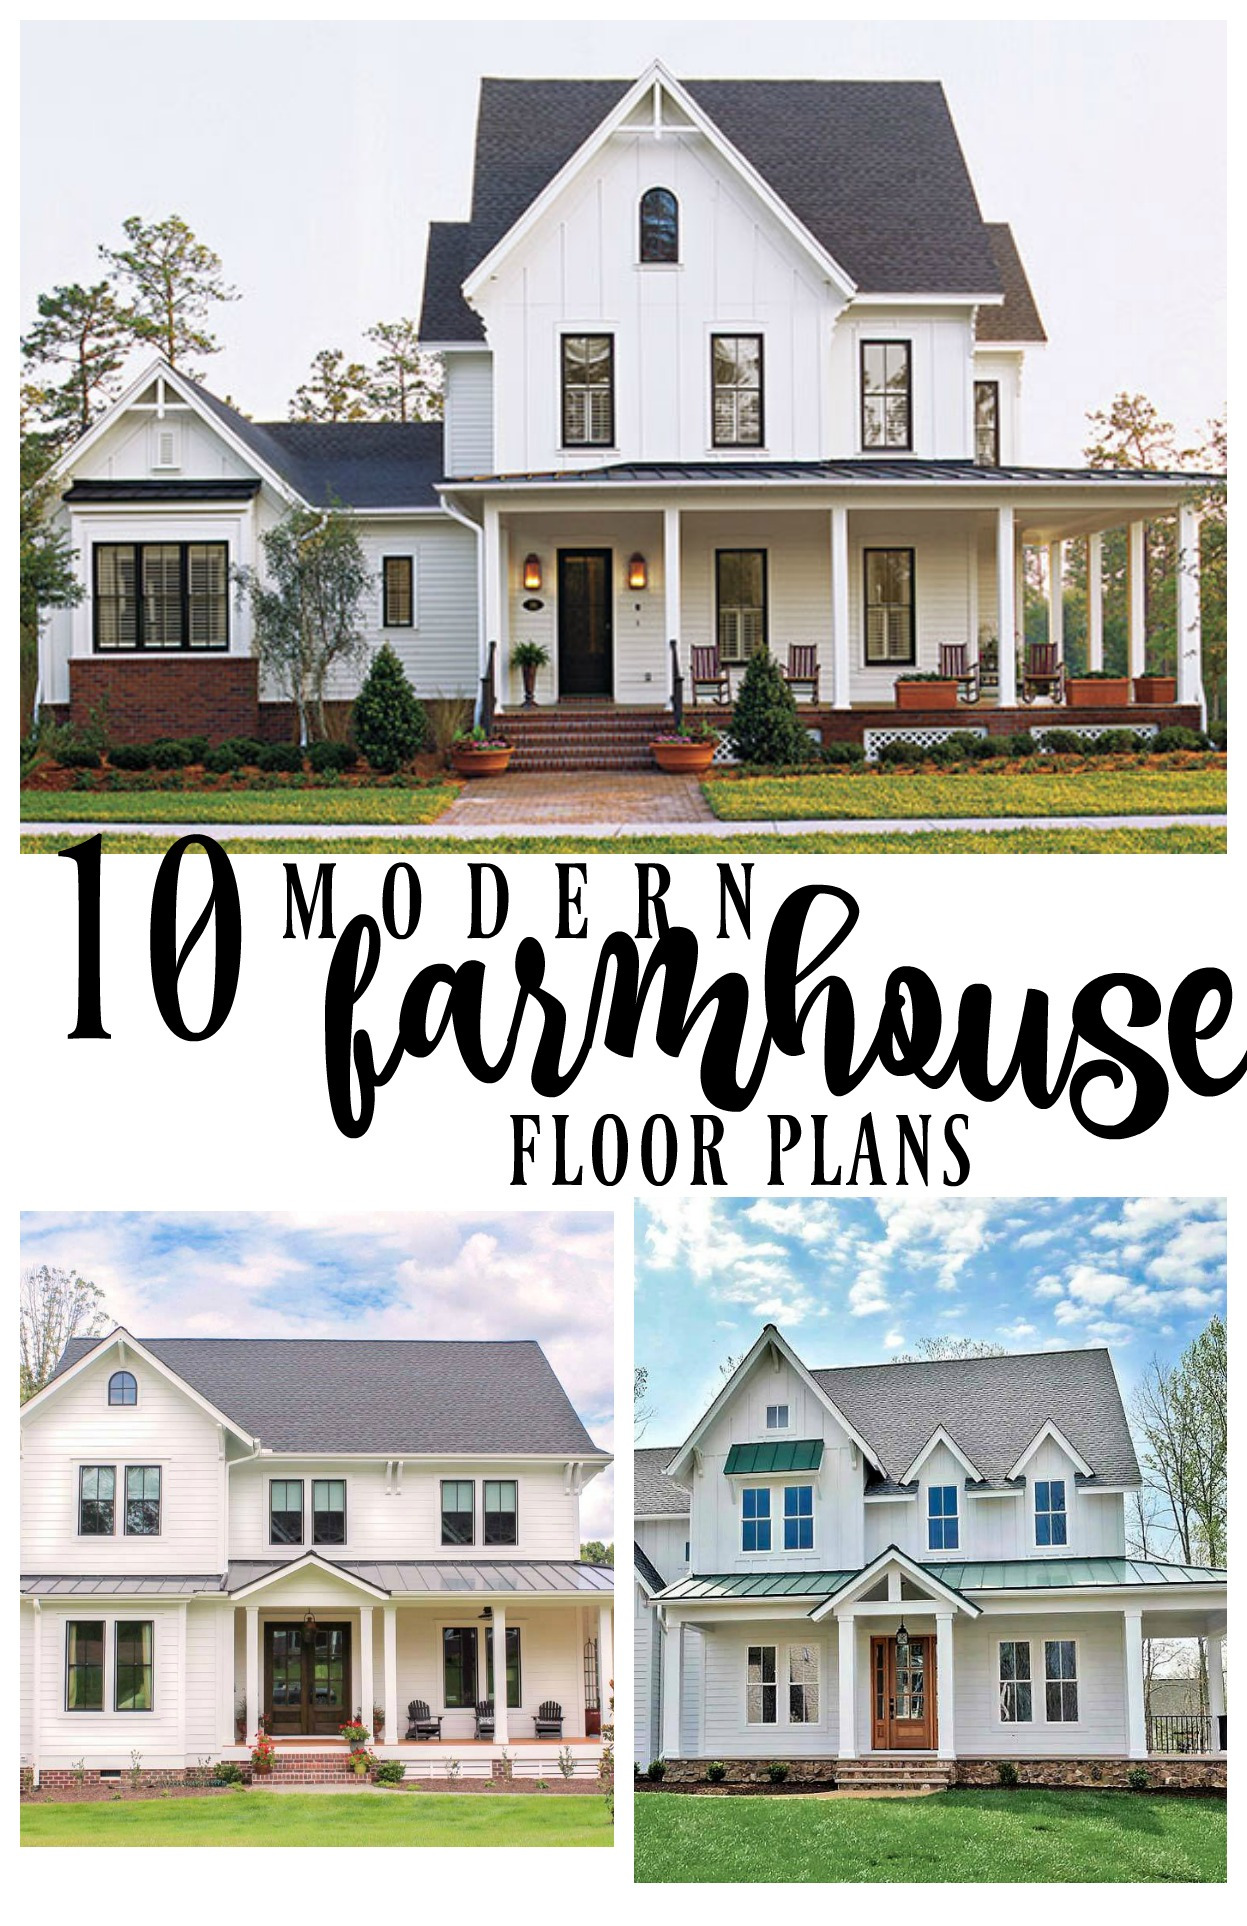 10 Modern Farmhouse Floor Plans